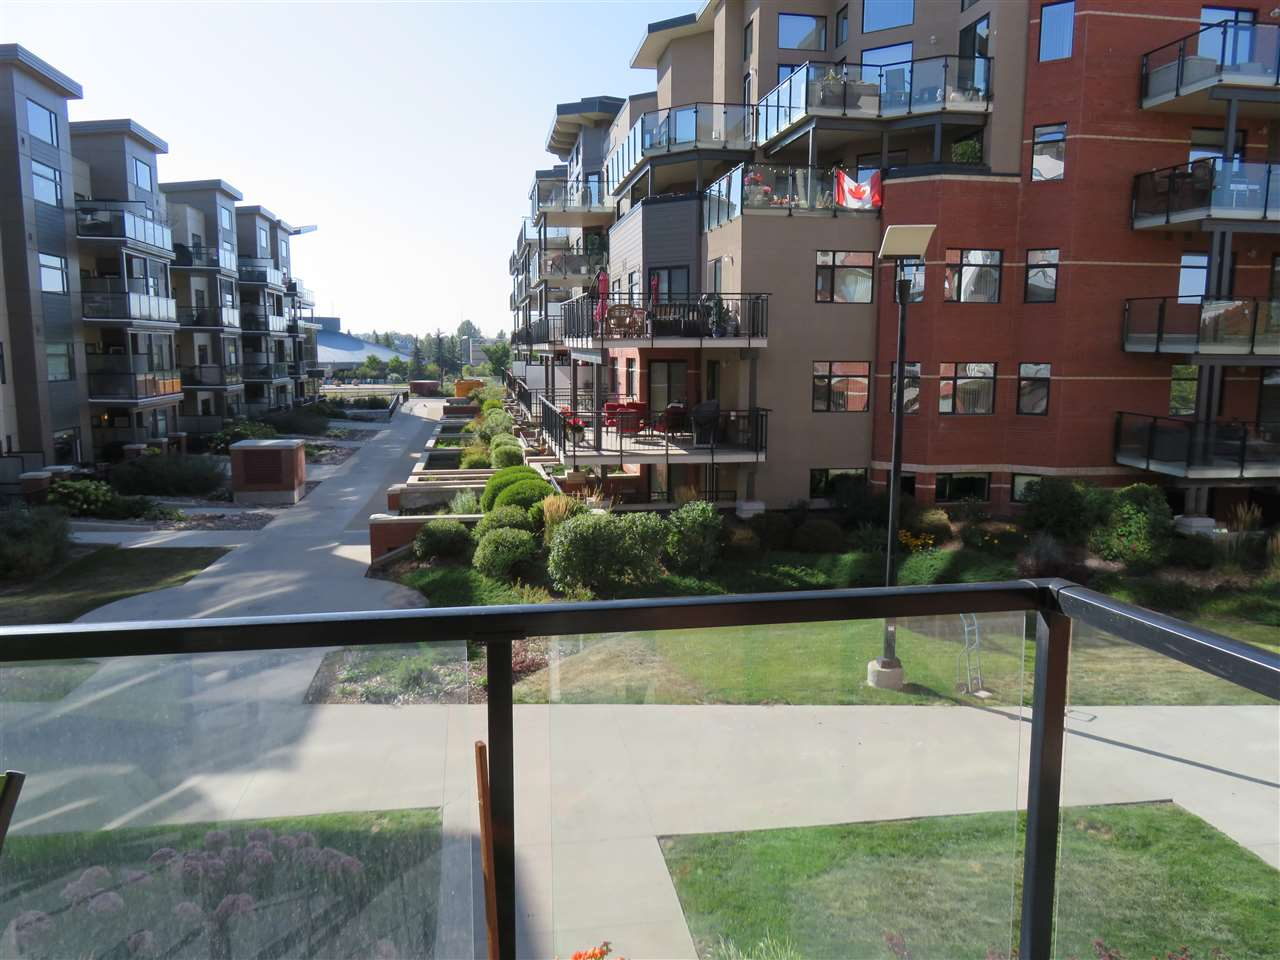 Main Photo: 208 141 FESTIVAL Way: Sherwood Park Condo for sale : MLS® # E4092262